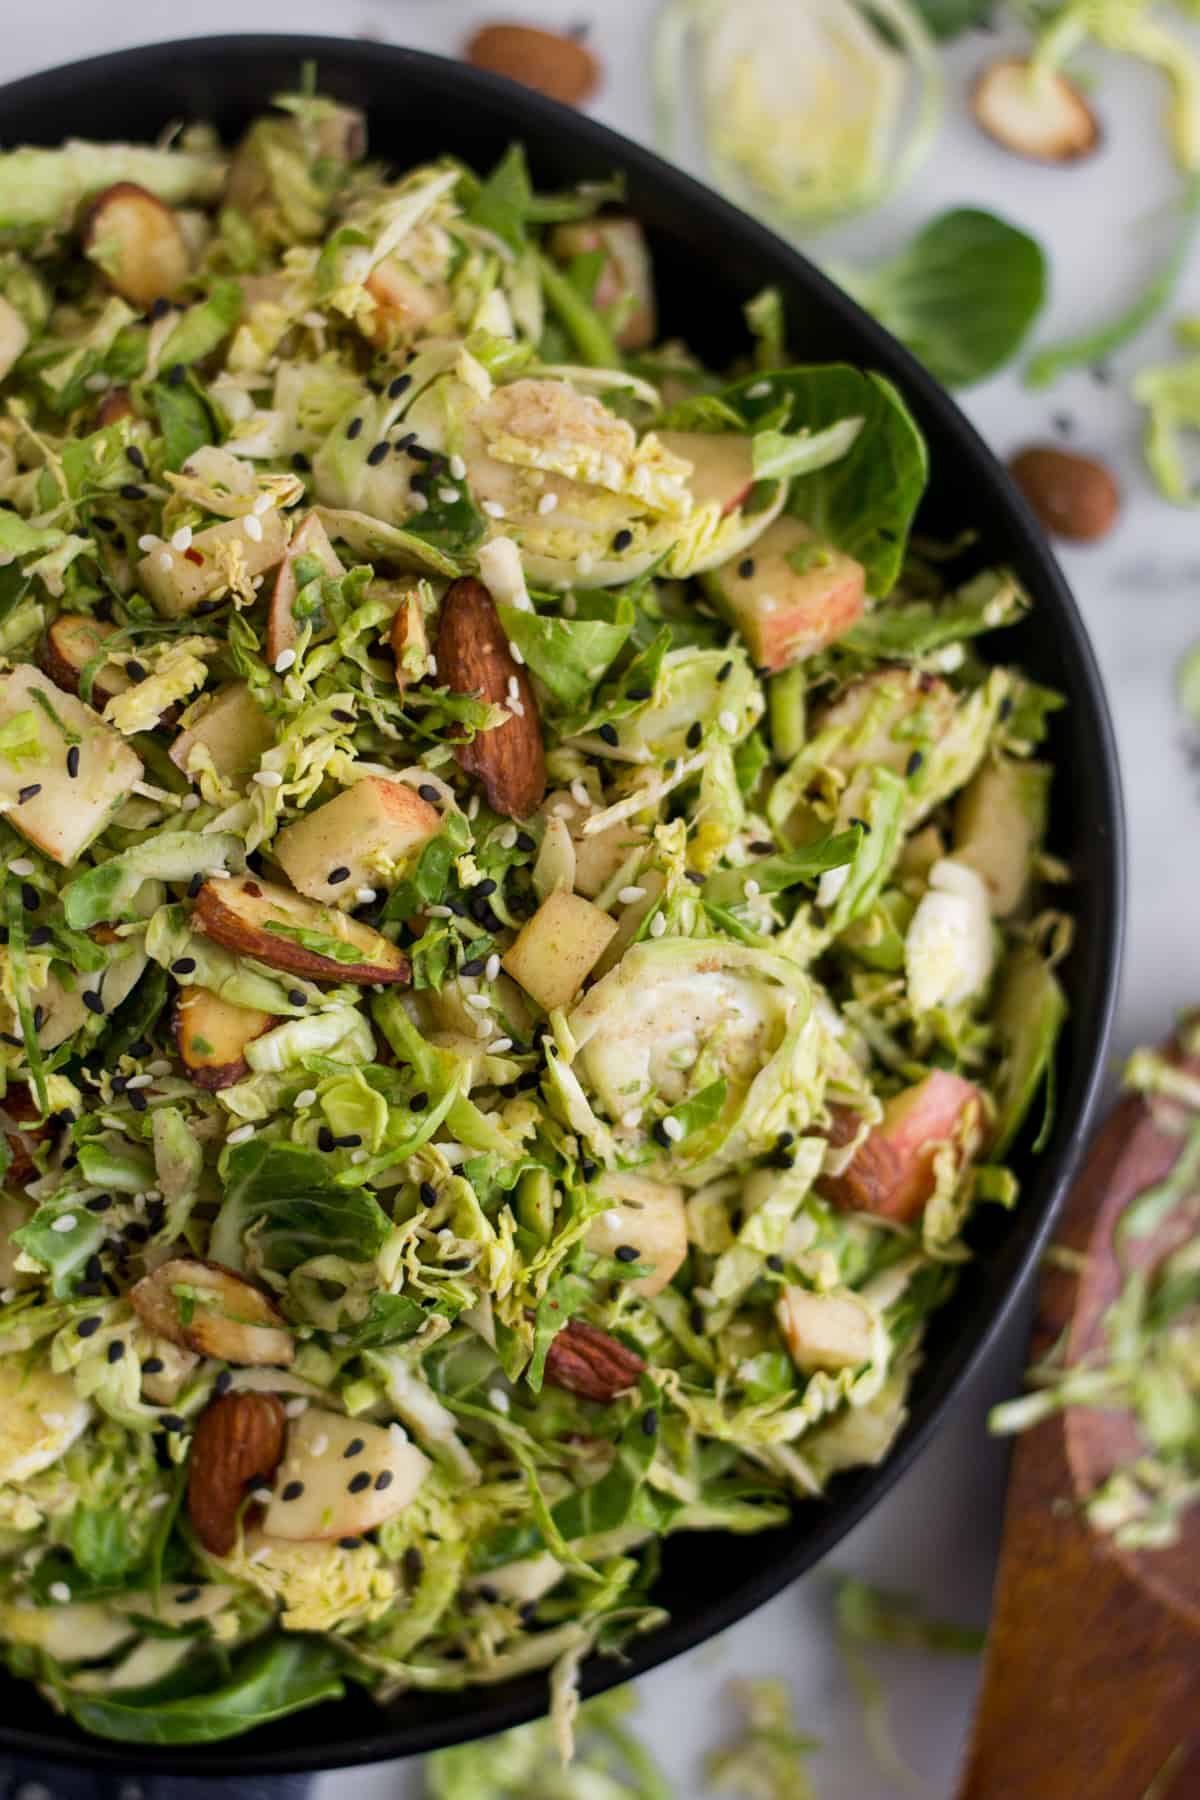 Close up of a black bowl with apple & shaved brussels sprouts salad